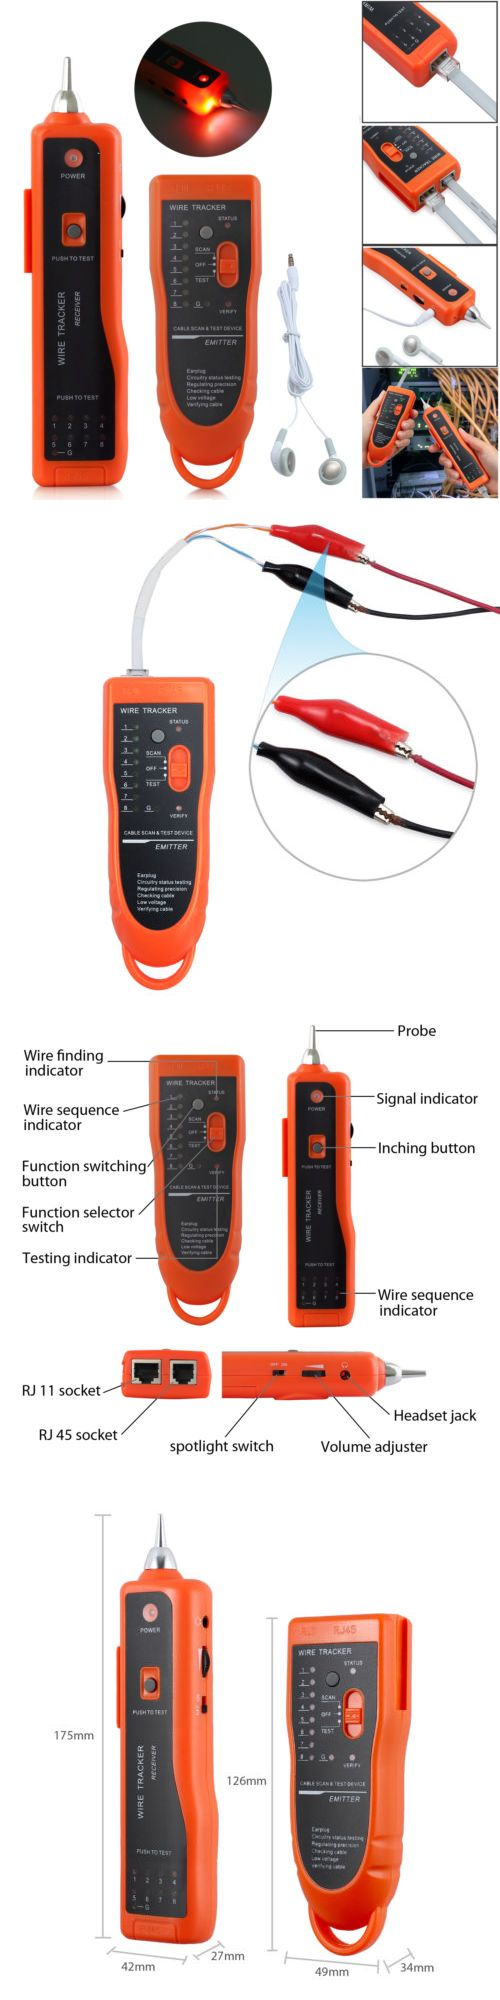 Phone Telephone Network Wire Line Lan Cable Guage Rj Tracker Toner Tracer Tester 5060492196518 Ebay Cable Toner Tracker